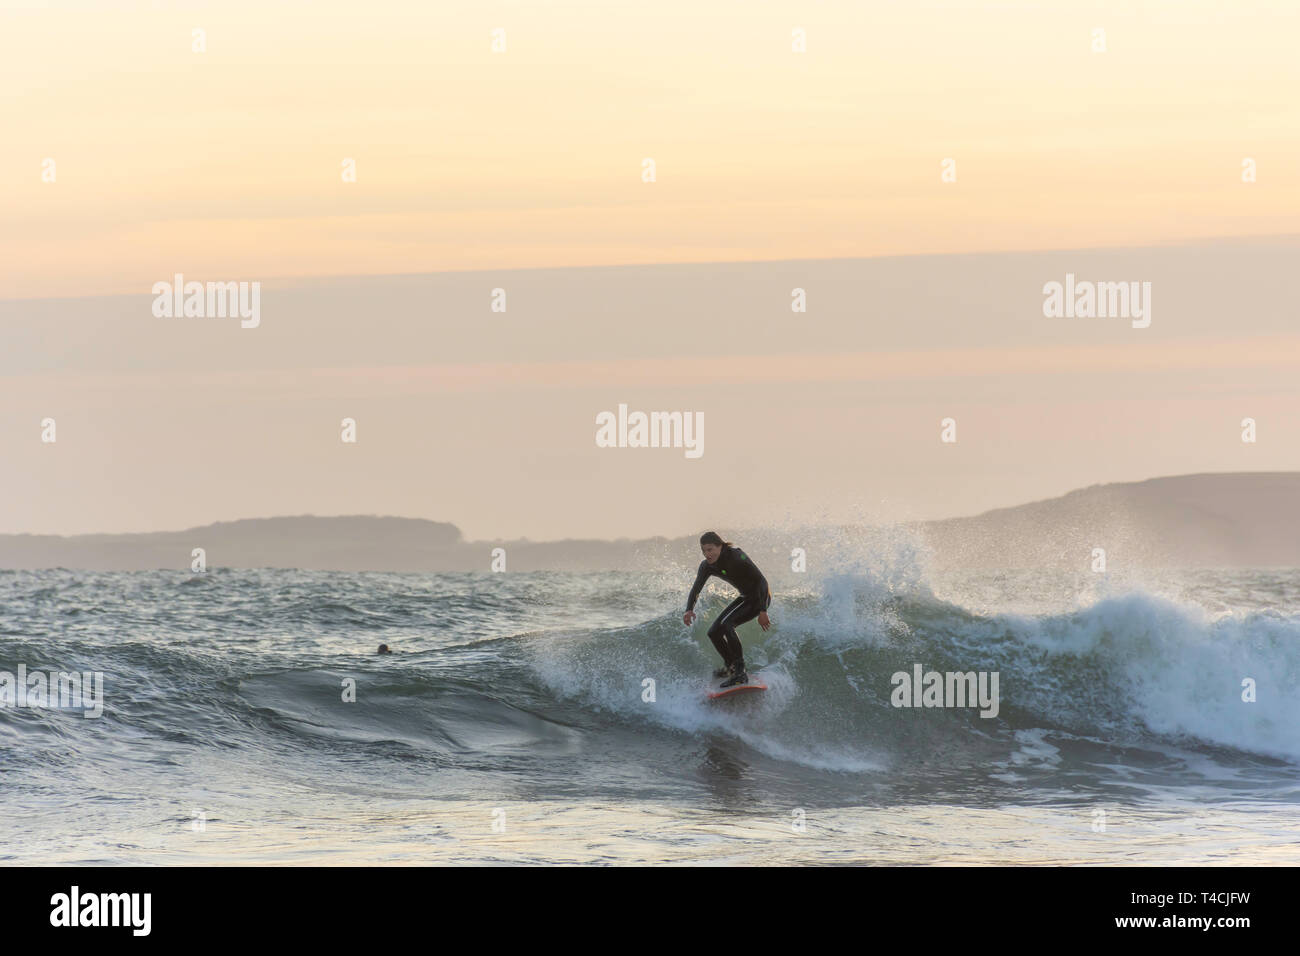 Tenby, Pembrokeshire/UK.04.18.2018-Surfer riding the wave in rough sea at sunset.Healthy, active lifestyle, extreme sport.Recreational pursuit. - Stock Image